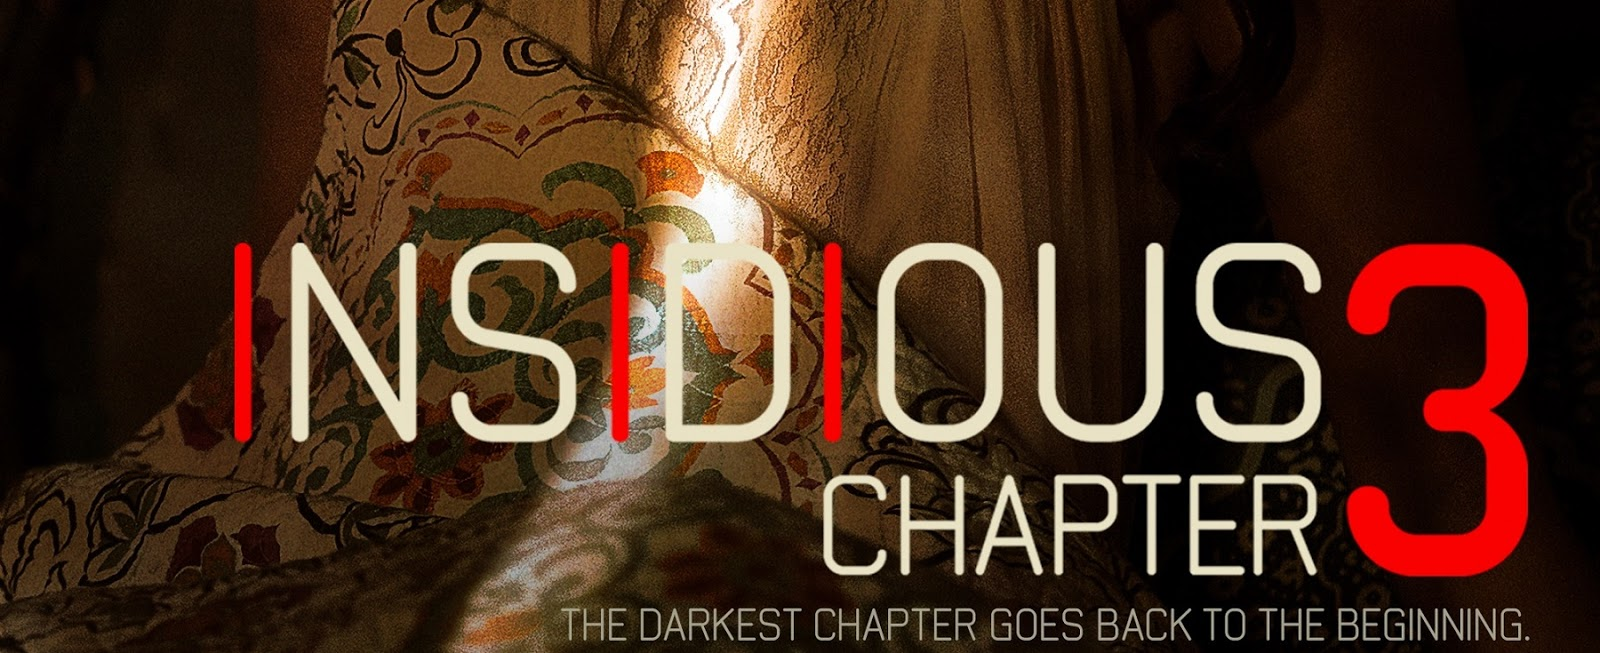 Review Insidious Chapter 3